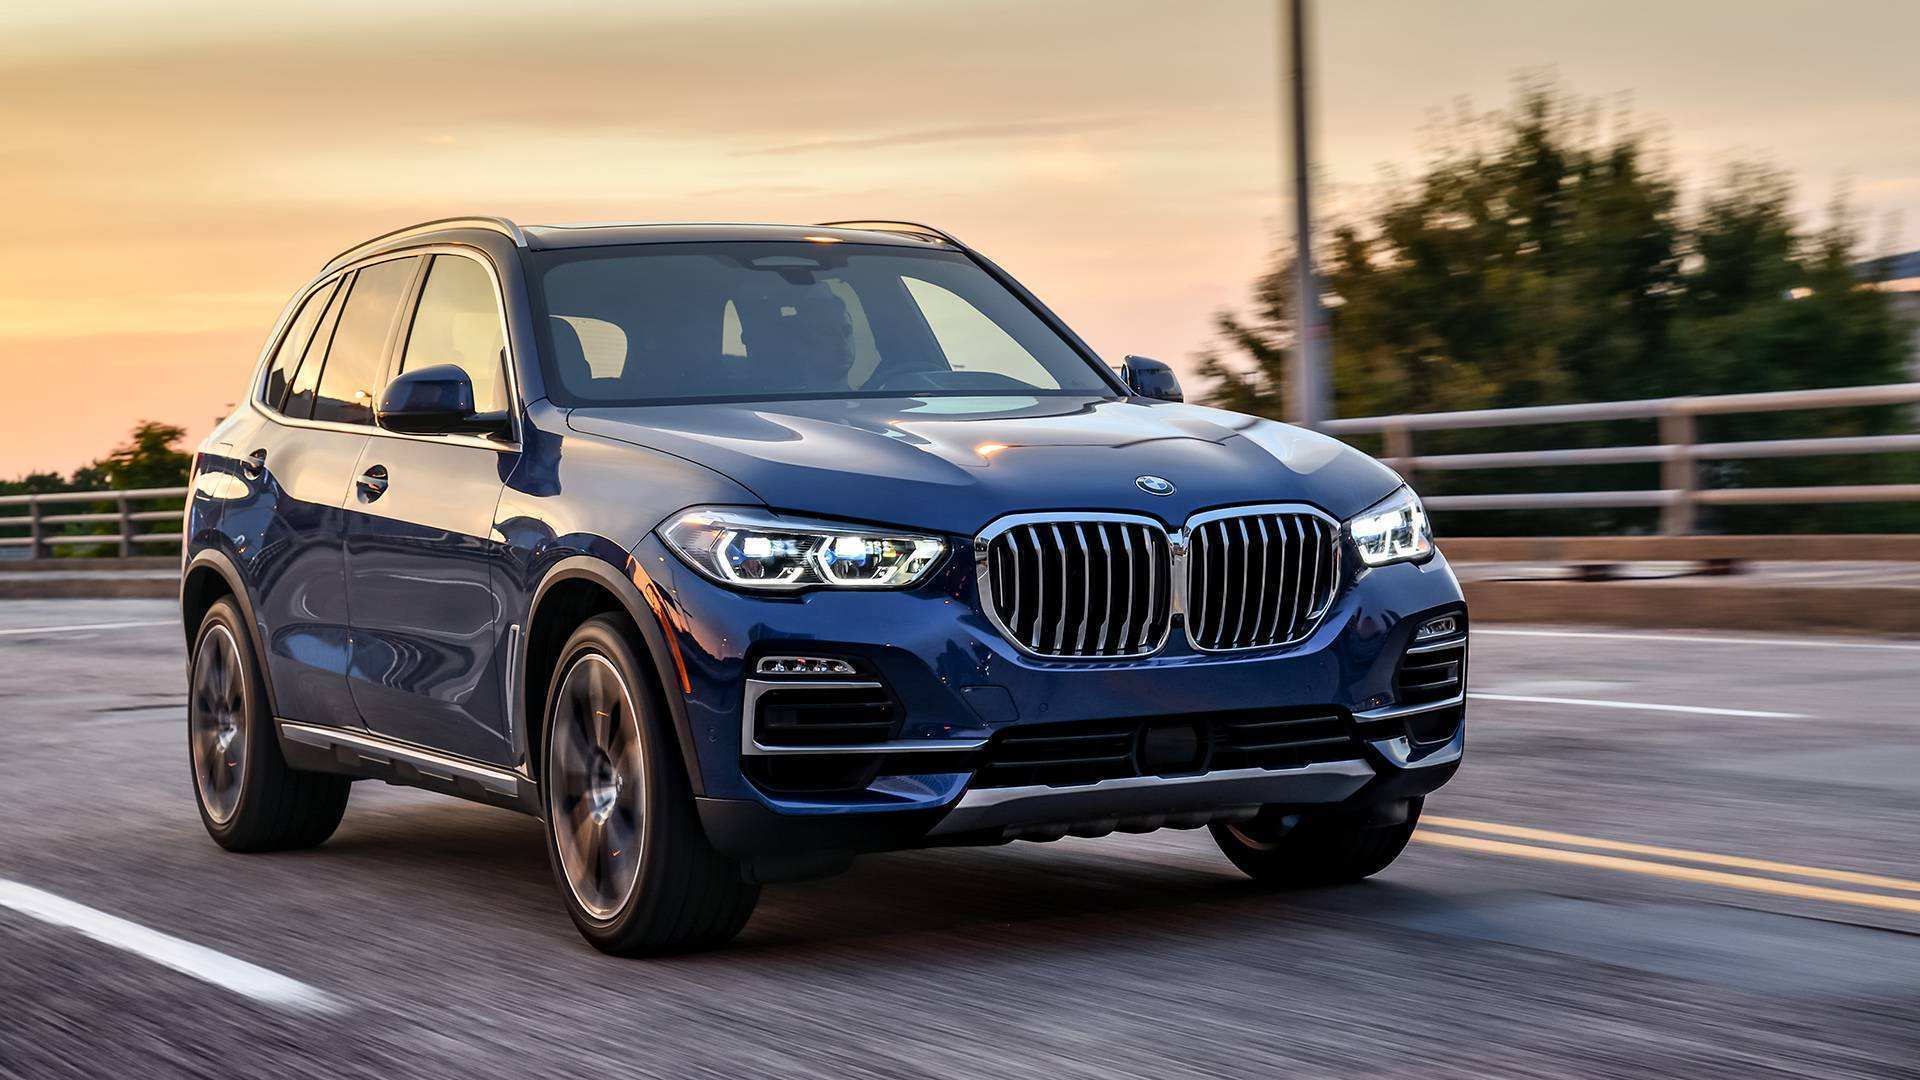 50 The Best Gt Bmw 2019 First Drive Engine for Best Gt Bmw 2019 First Drive